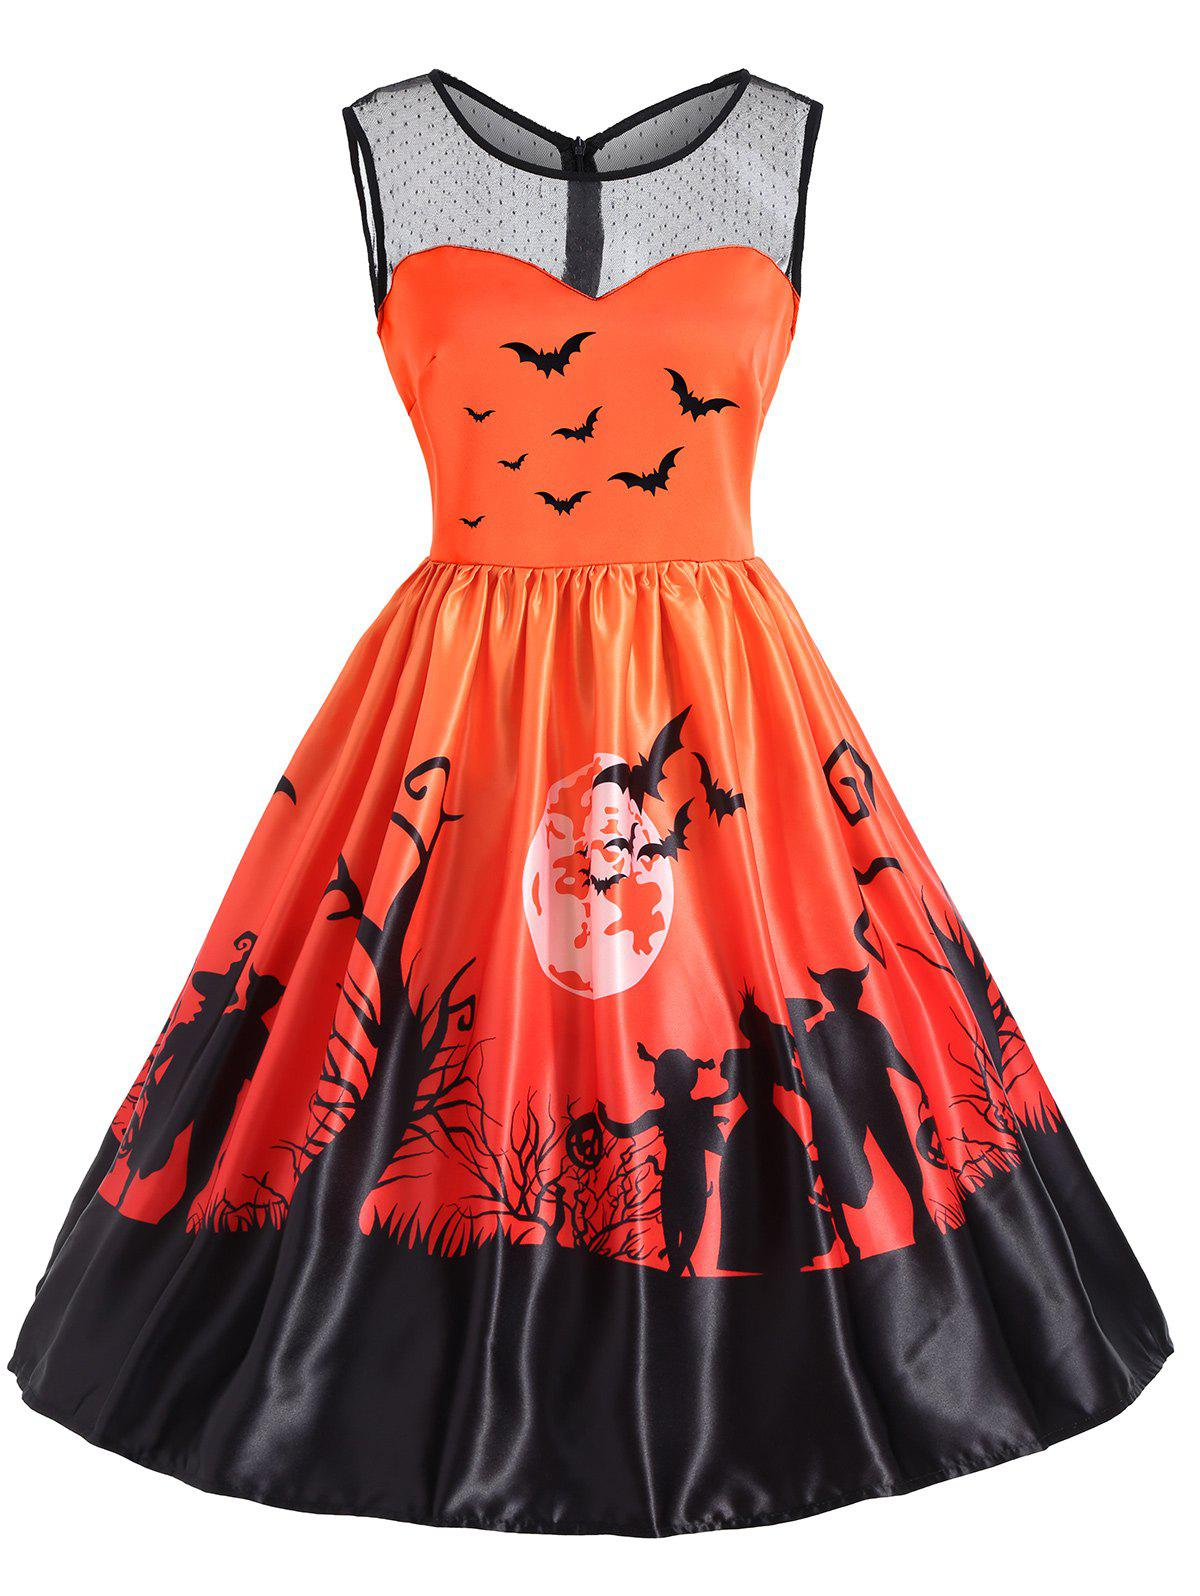 Mesh Yoke Halloween Bat Moon Print DressWOMEN<br><br>Size: M; Color: ORANGE; Style: Vintage; Material: Cotton,Polyester; Silhouette: A-Line; Dresses Length: Knee-Length; Neckline: Round Collar; Sleeve Length: Sleeveless; Embellishment: Mesh; Pattern Type: Ombre,Print; With Belt: No; Season: Fall,Spring,Summer; Weight: 0.3500kg; Package Contents: 1 x Dress;